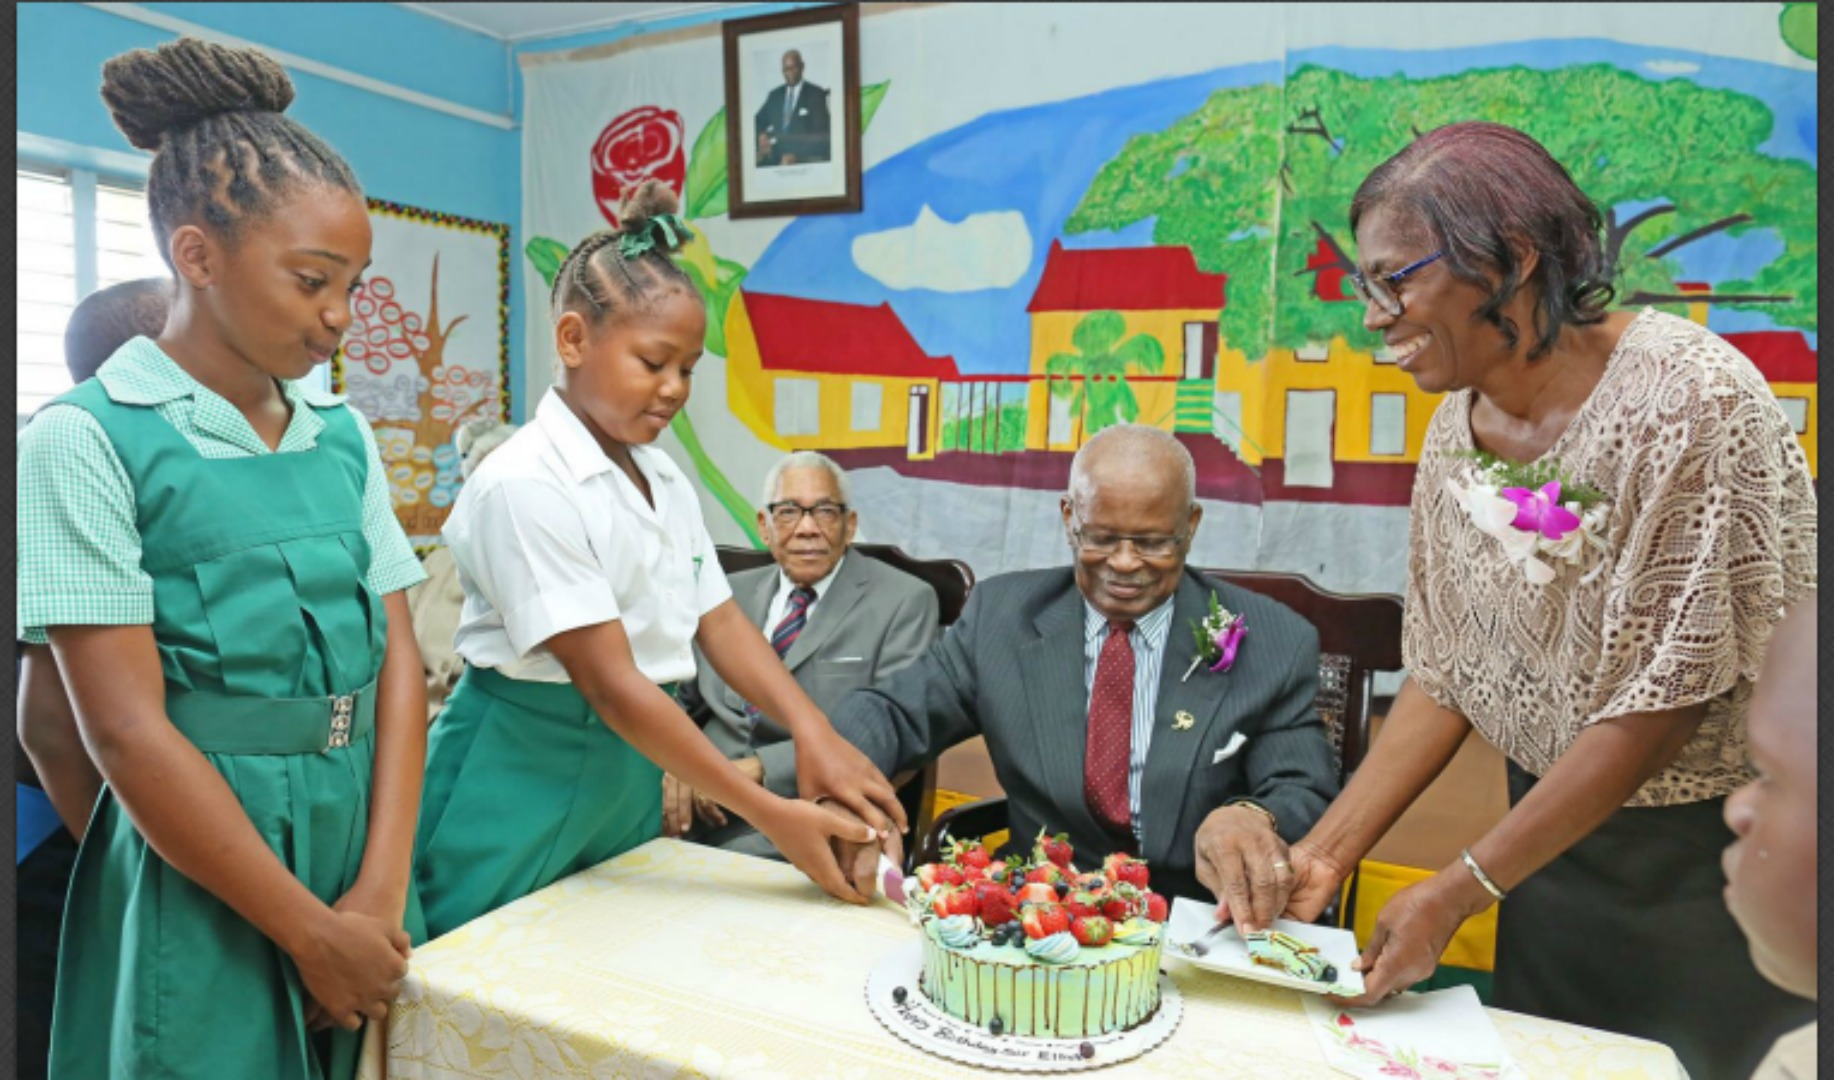 The GG got a 'thank you' cake from the students of Boscobel Primary.